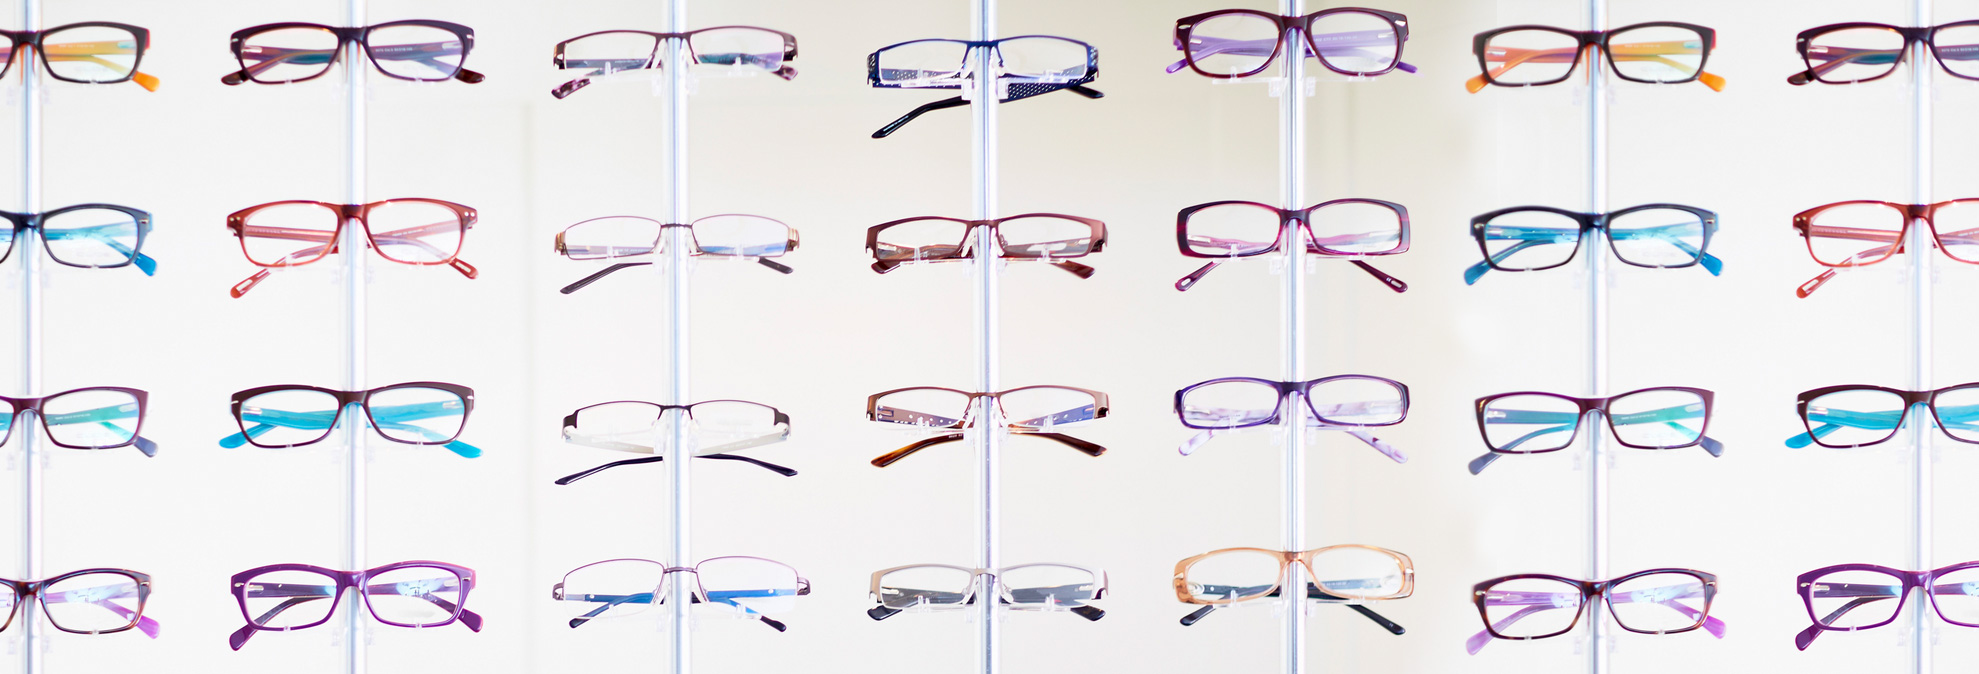 043305db8cb 8 Great Ways to Save on the Cost of Eyeglasses - Consumer Reports